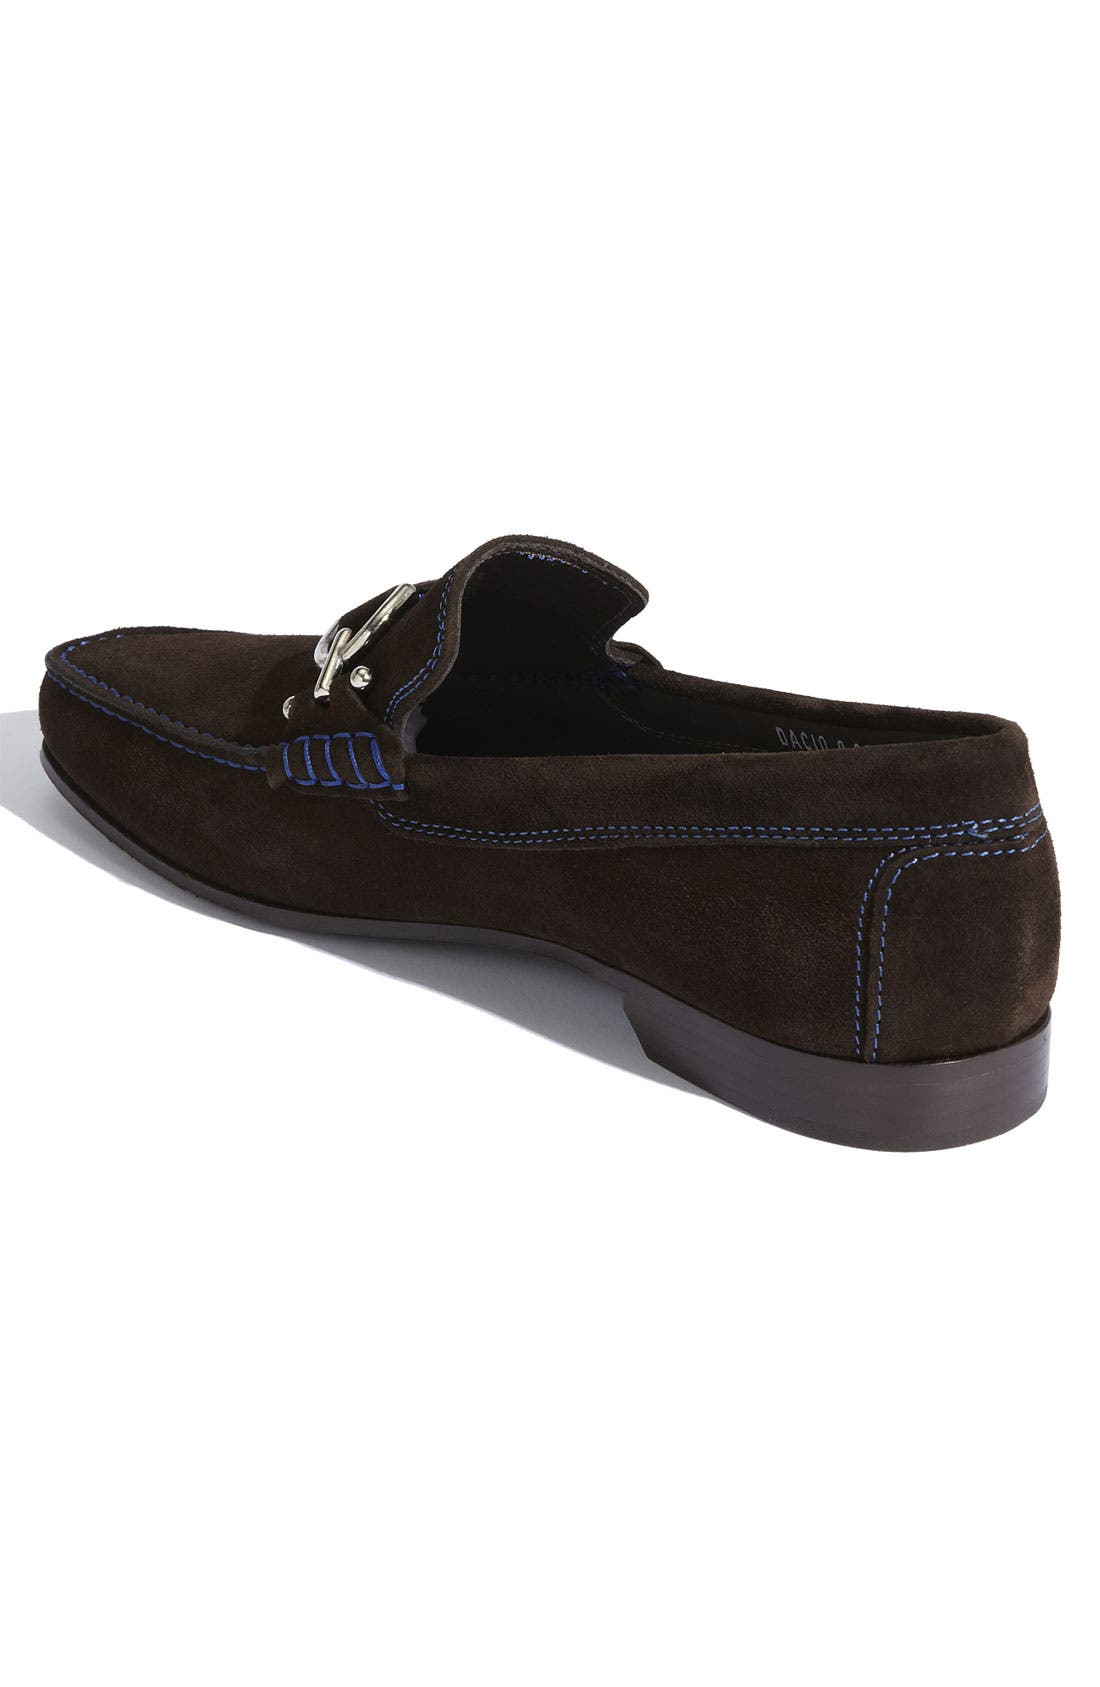 Alternate Image 2  - Donald J Pliner 'Dacio II' Loafer